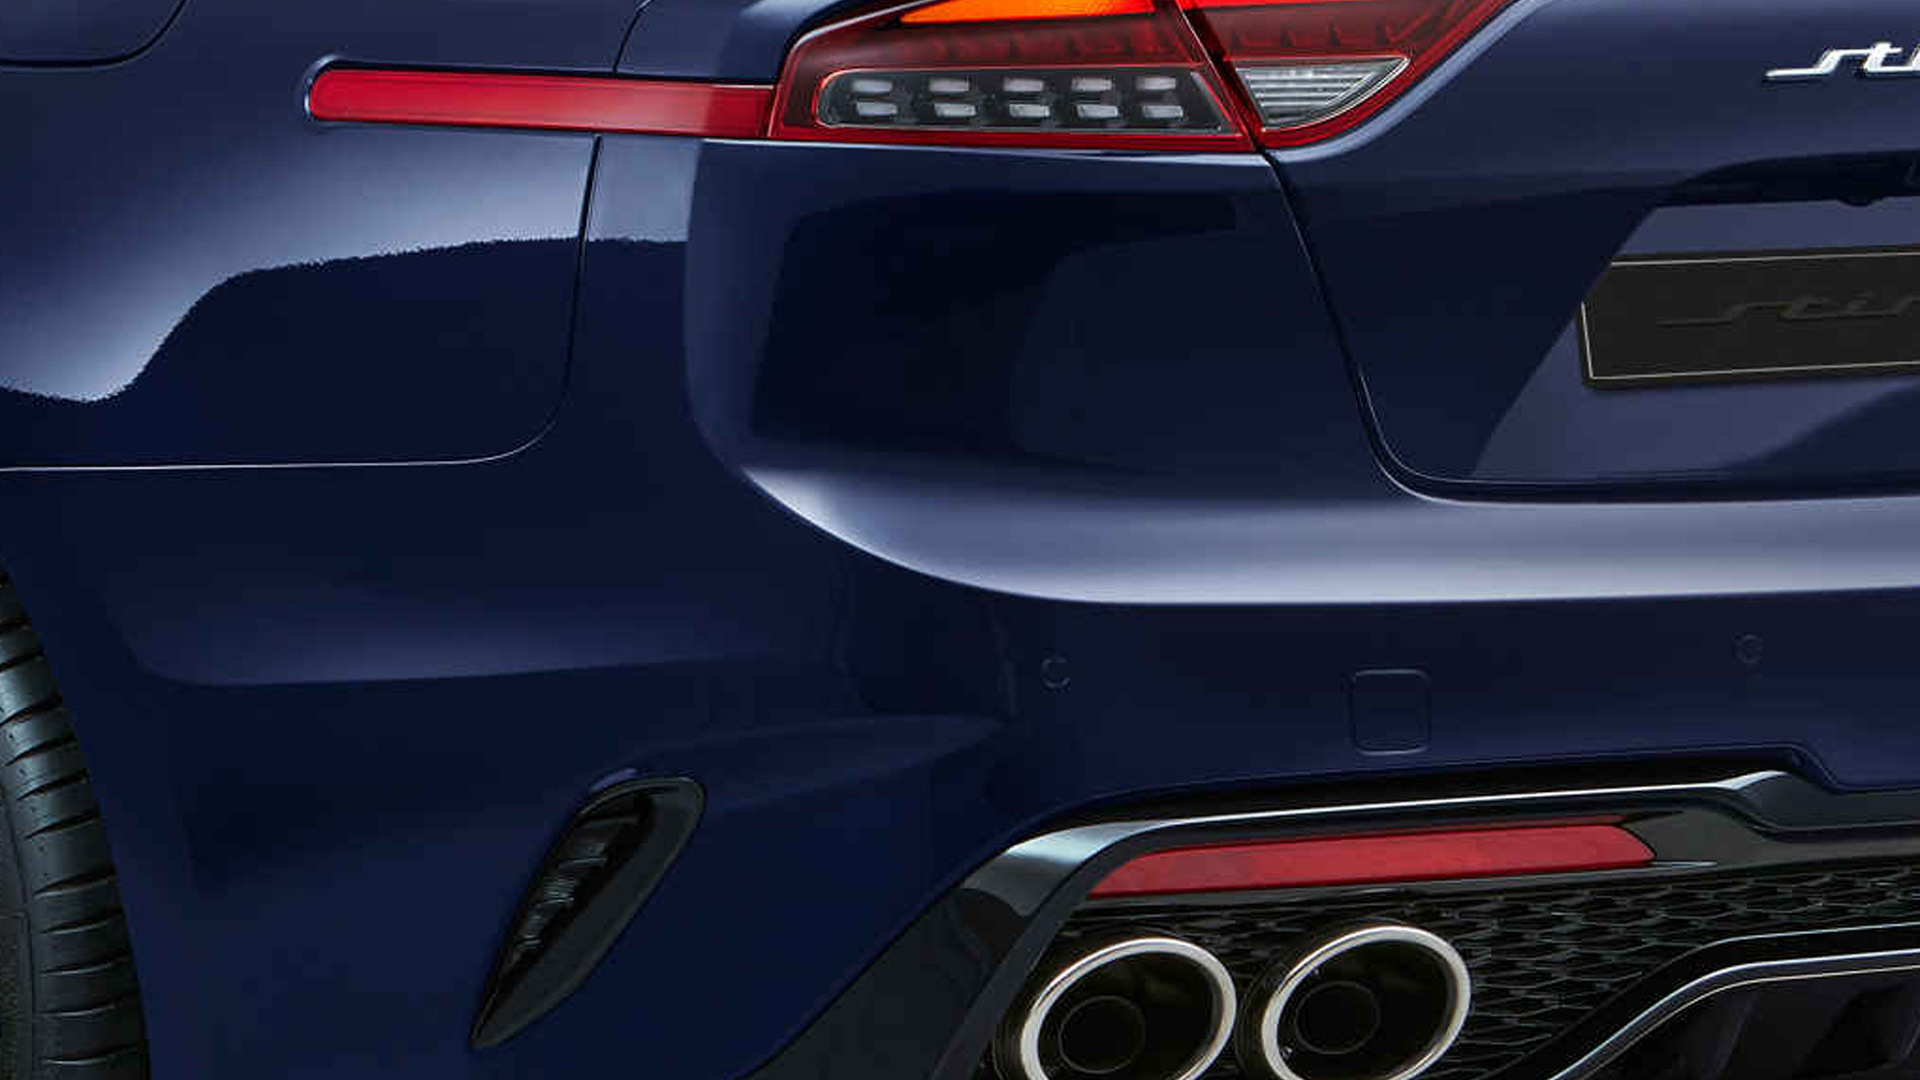 2021 Kia Stinger preview: New look for sporty fastback sedan